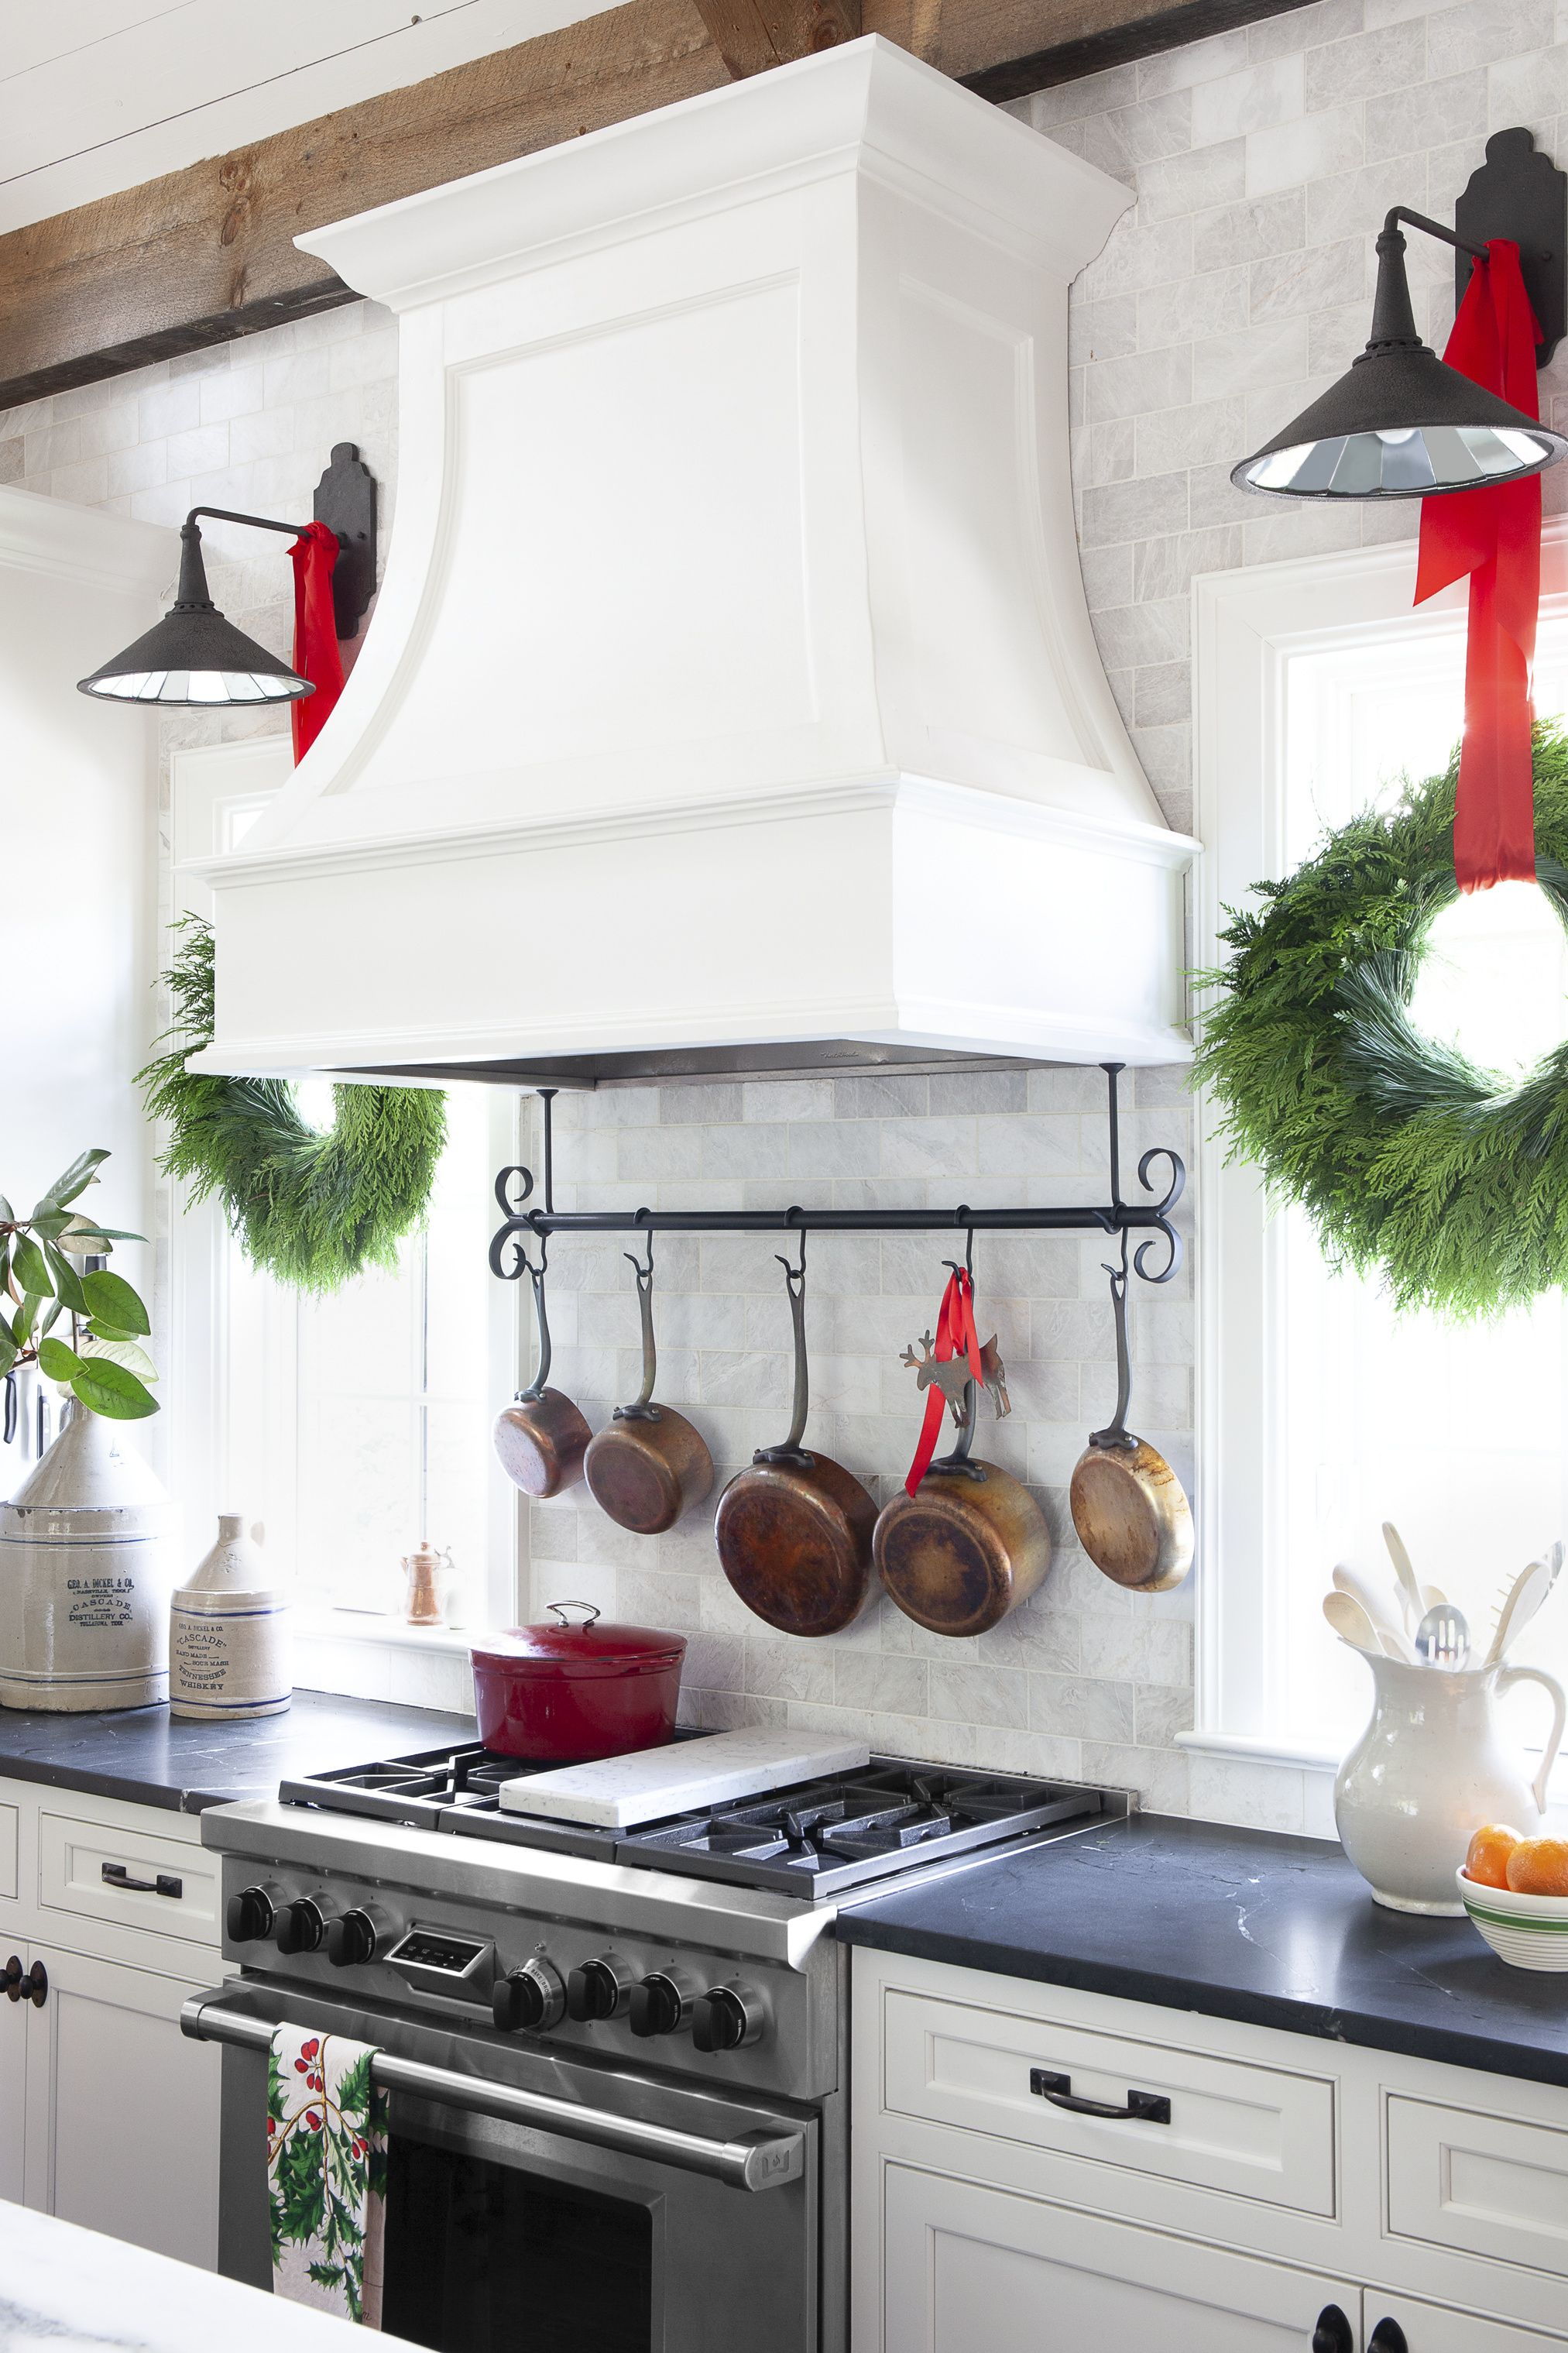 9 Kitchen Christmas Decorating Ideas   How to Decorate Your ...